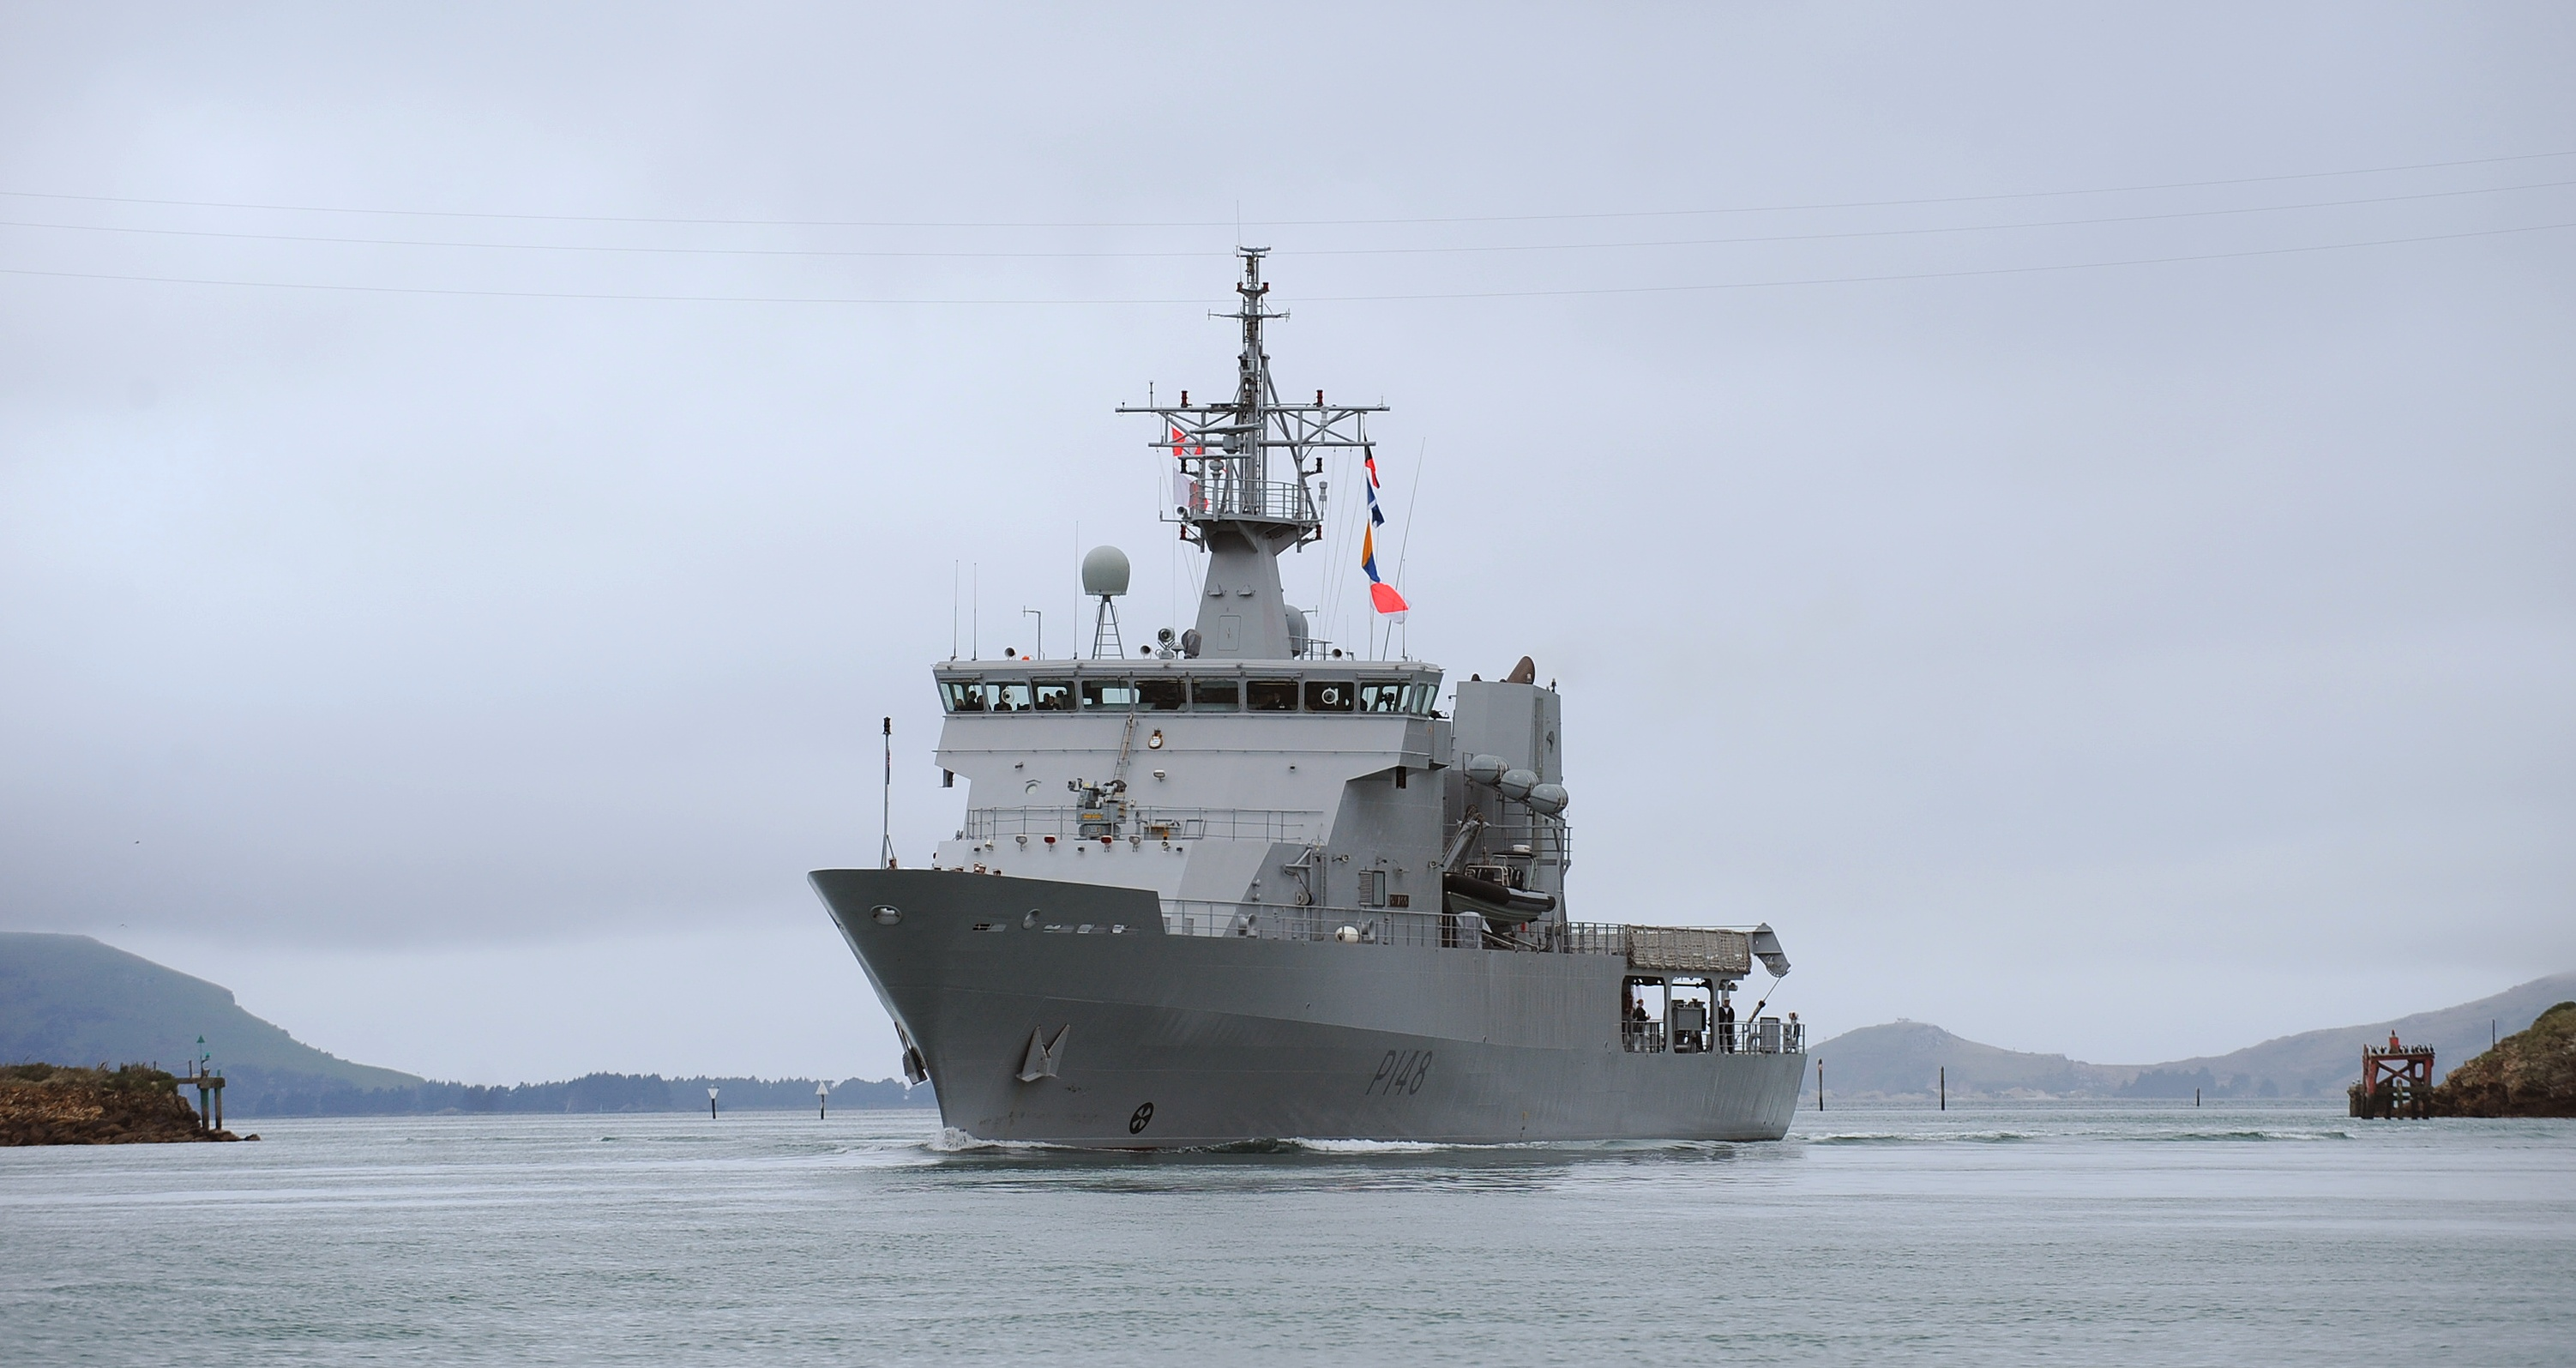 Dunedin is the home port for patrol vessel HMNZS Otago.